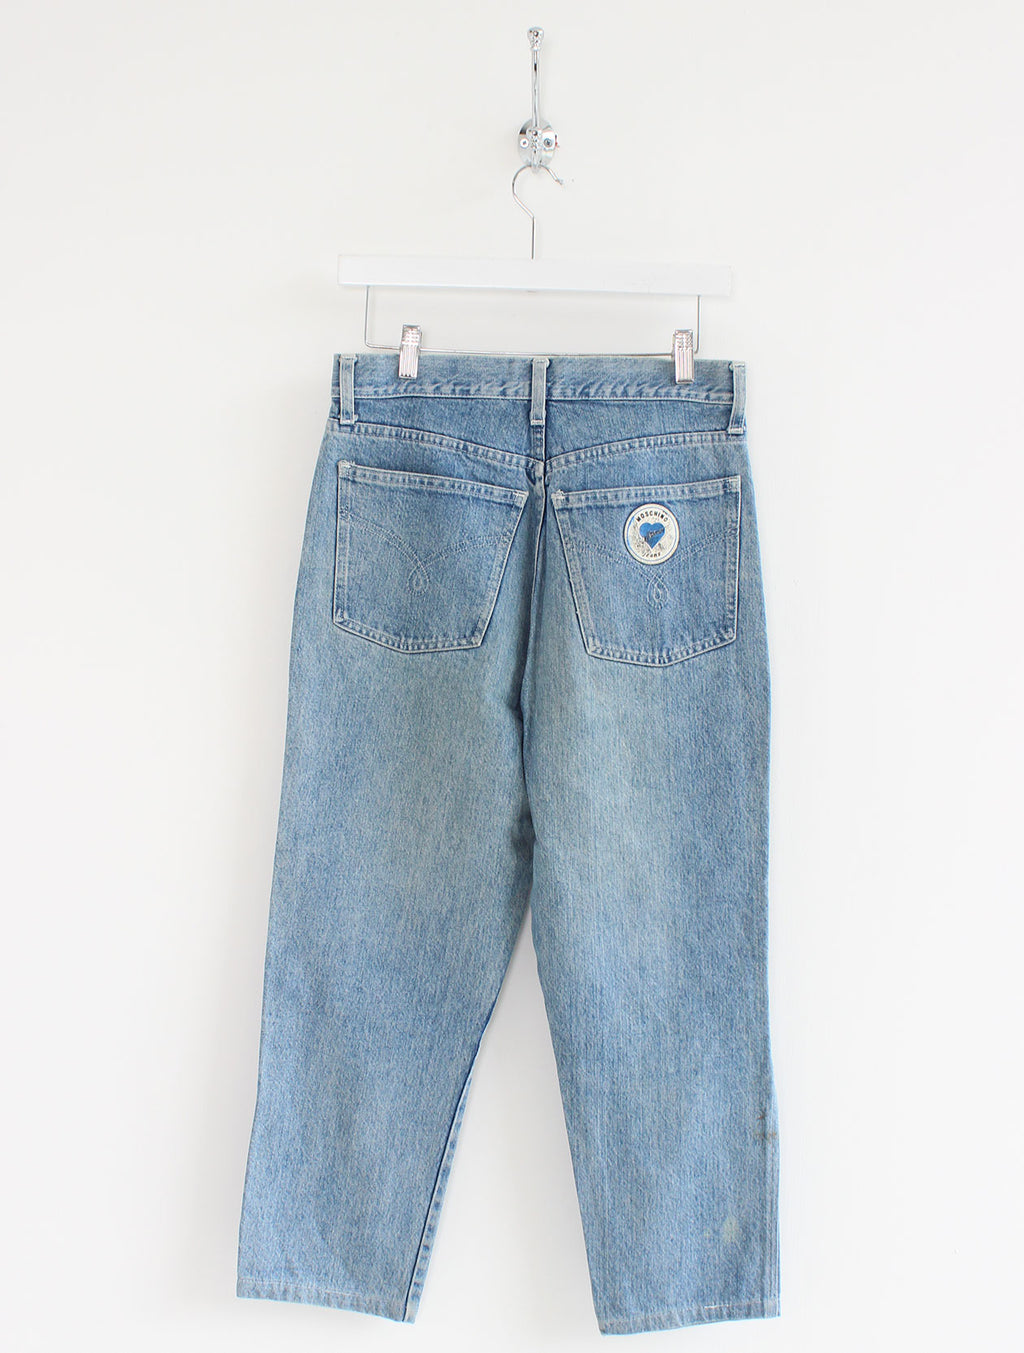 Women's Moschino High Waisted Jeans (31)